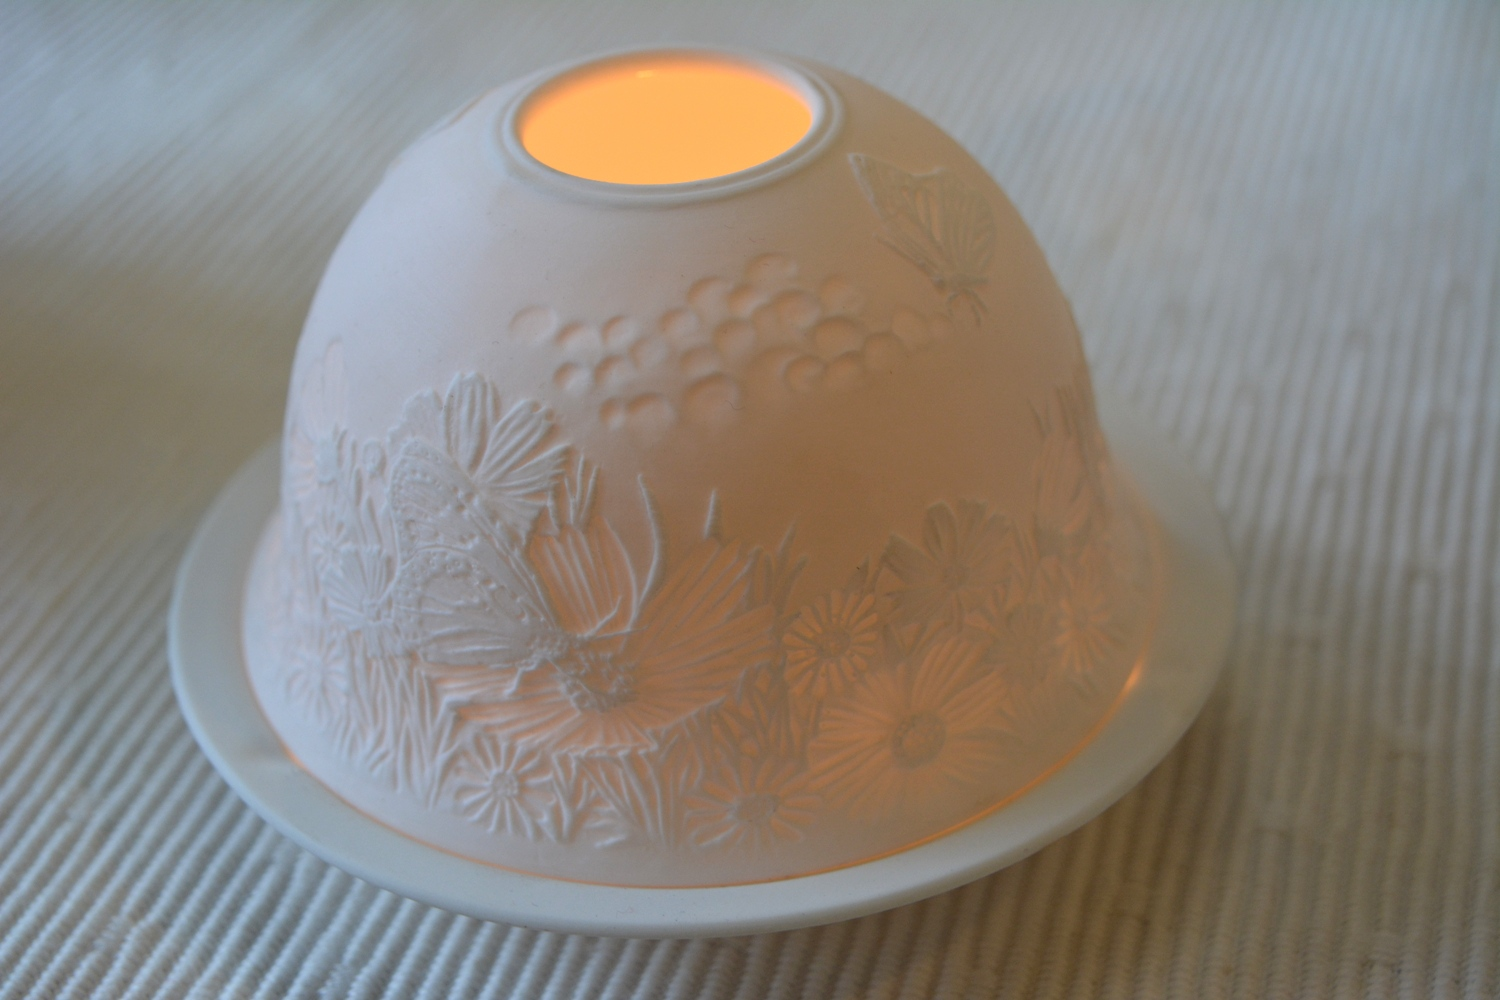 Spring Meadow White Dome Candle Holder  €9.50